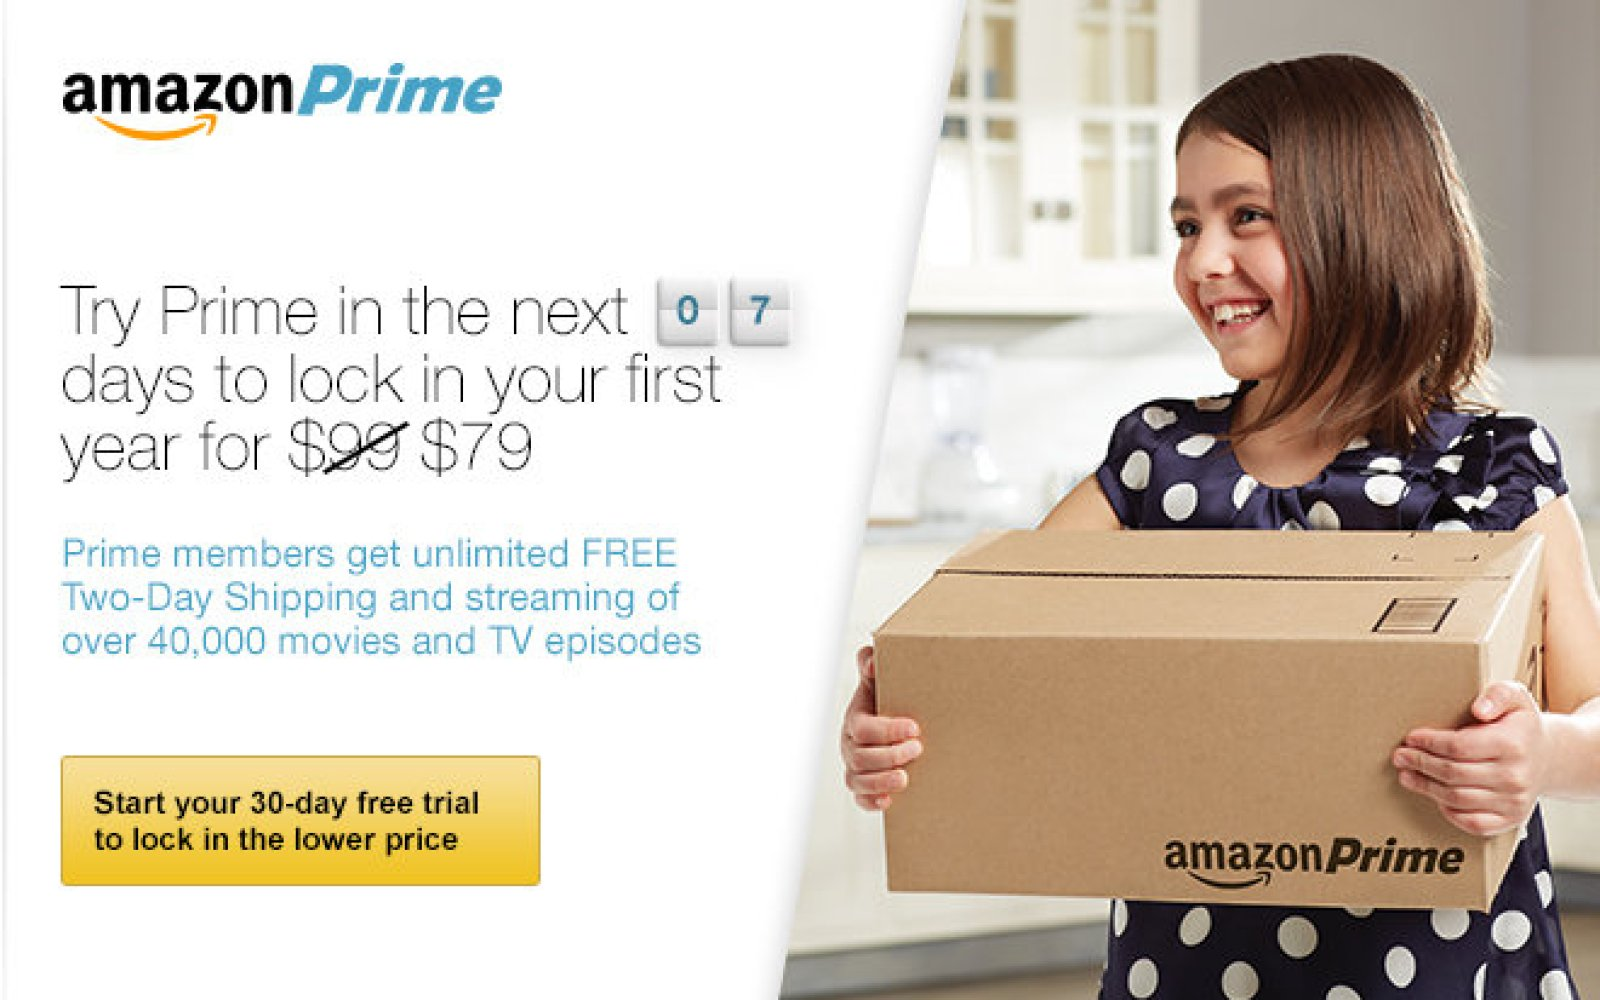 Amazon announces rate increases for regular ($99/yr) and Student Prime ($49/yr) memberships